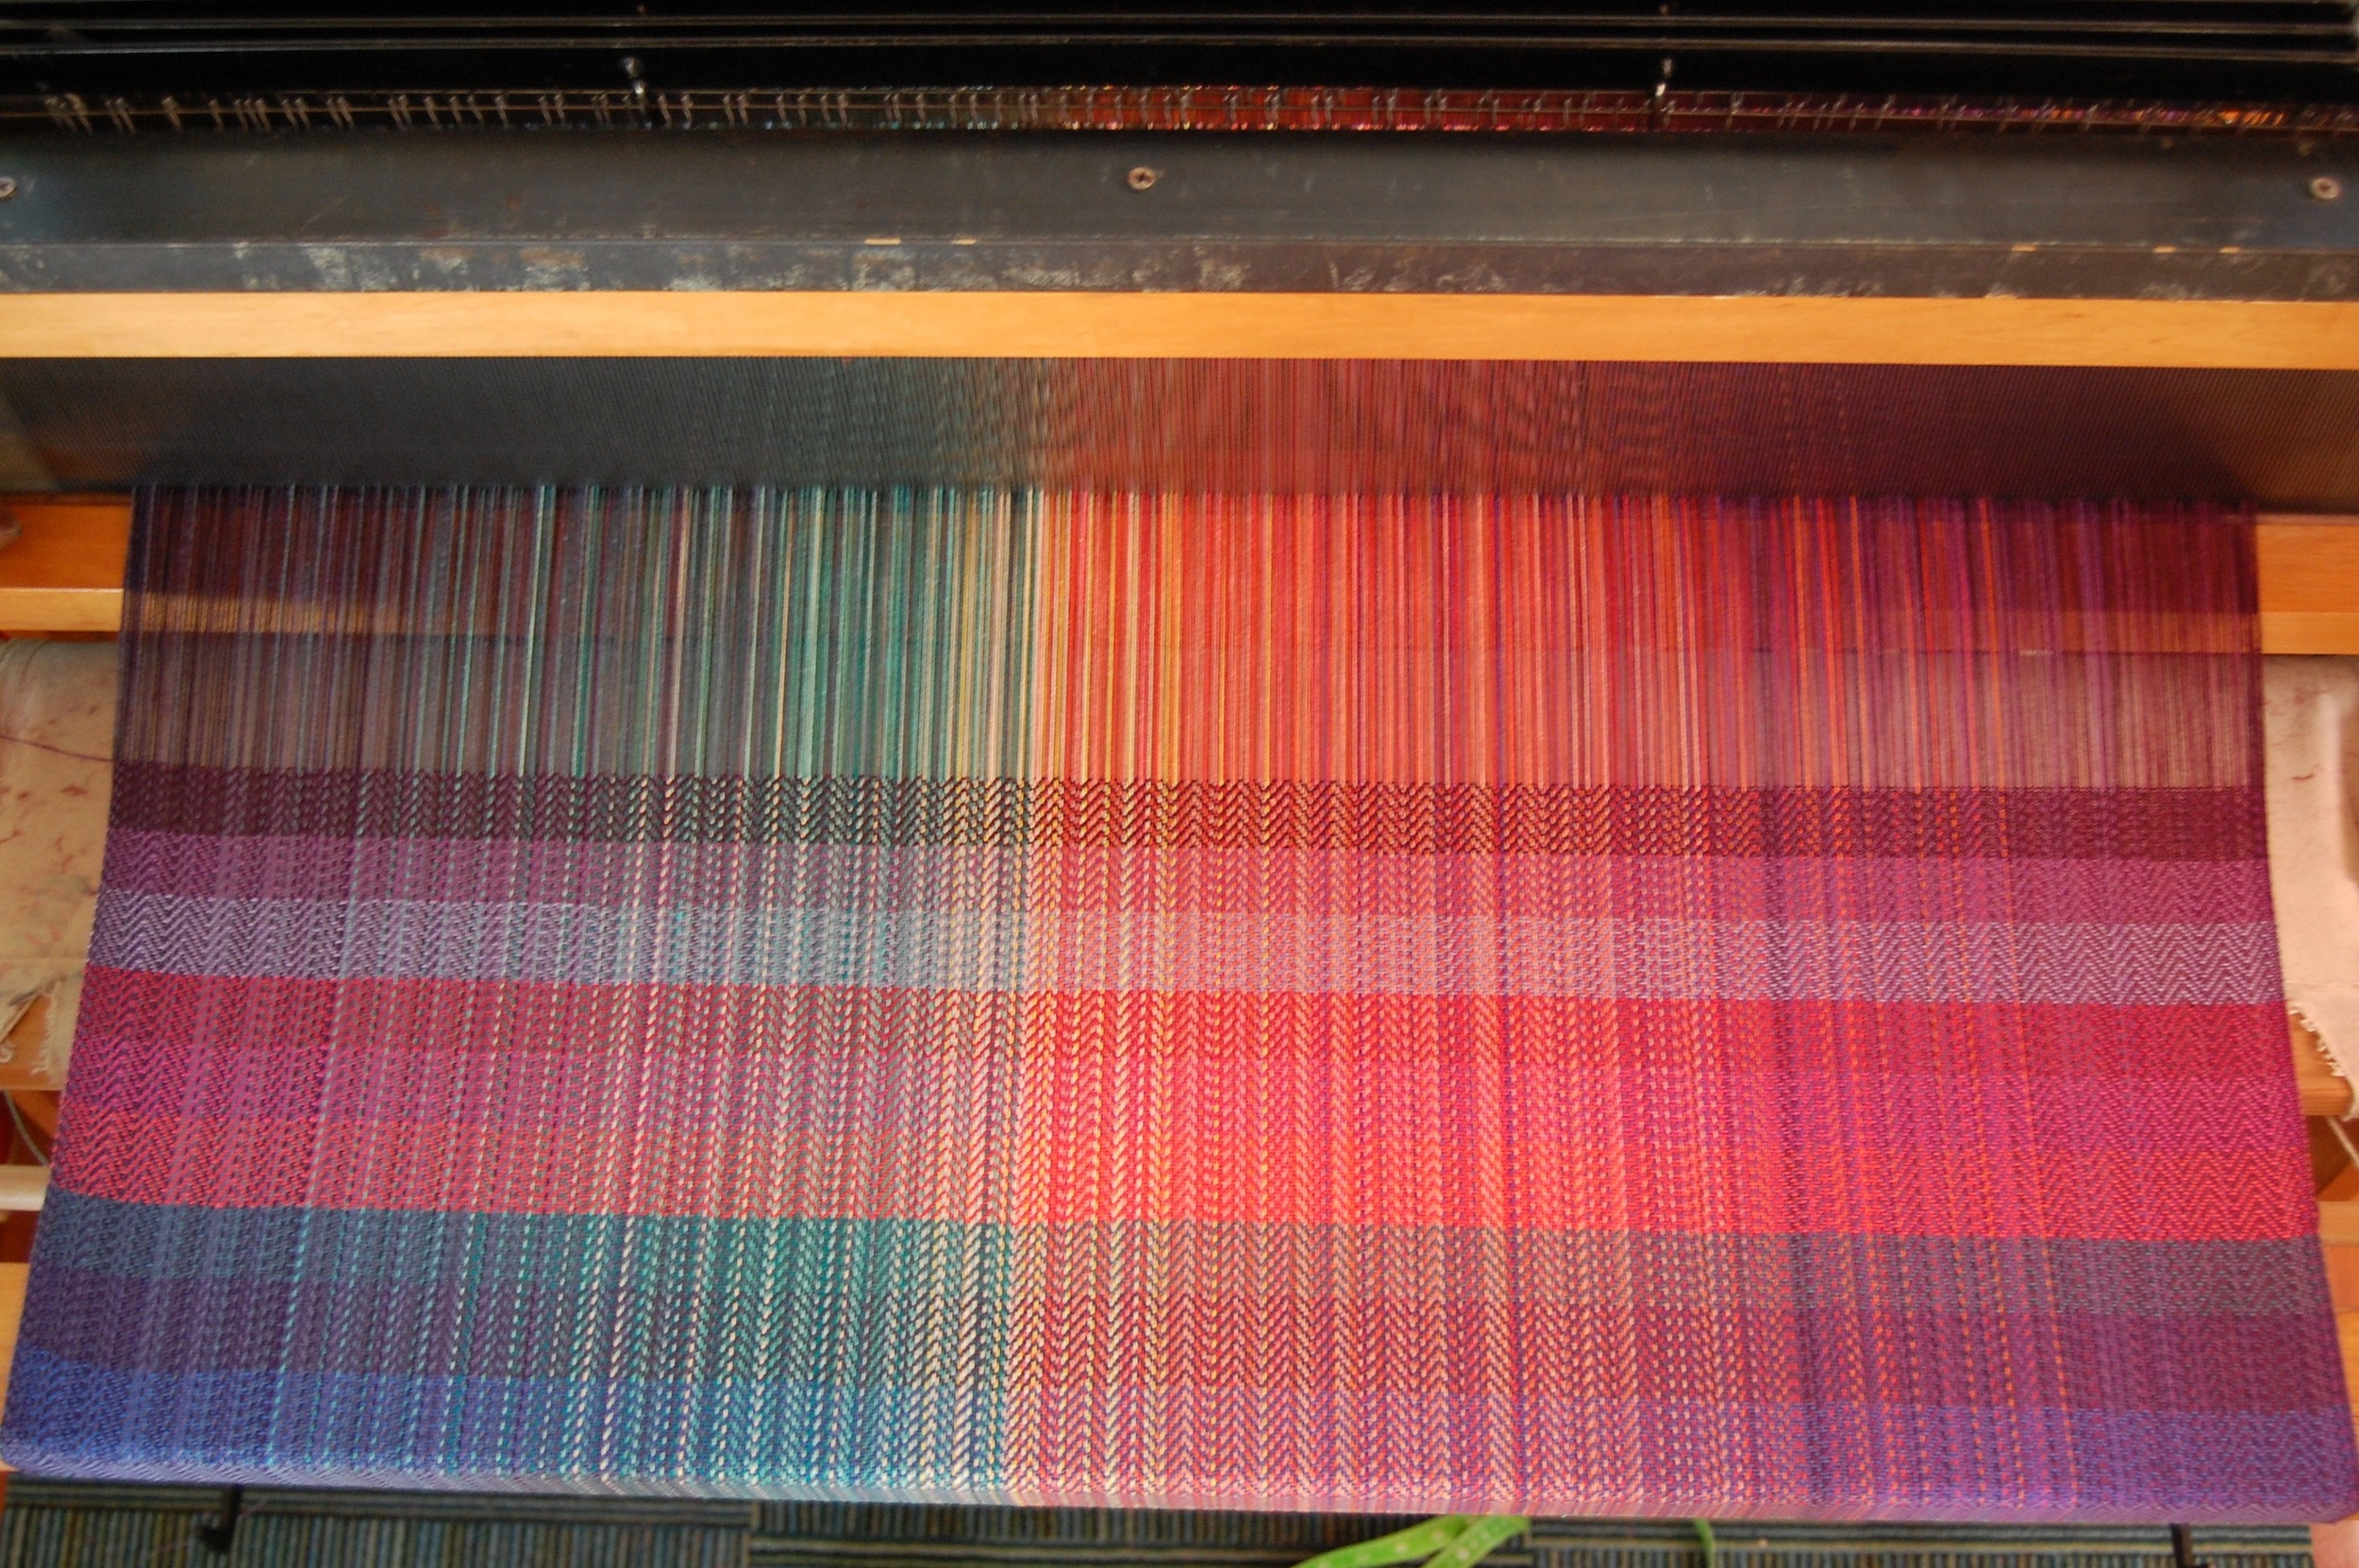 weft testing of other EC colors - from top: 163, 485, 2067, 469, 31, 122